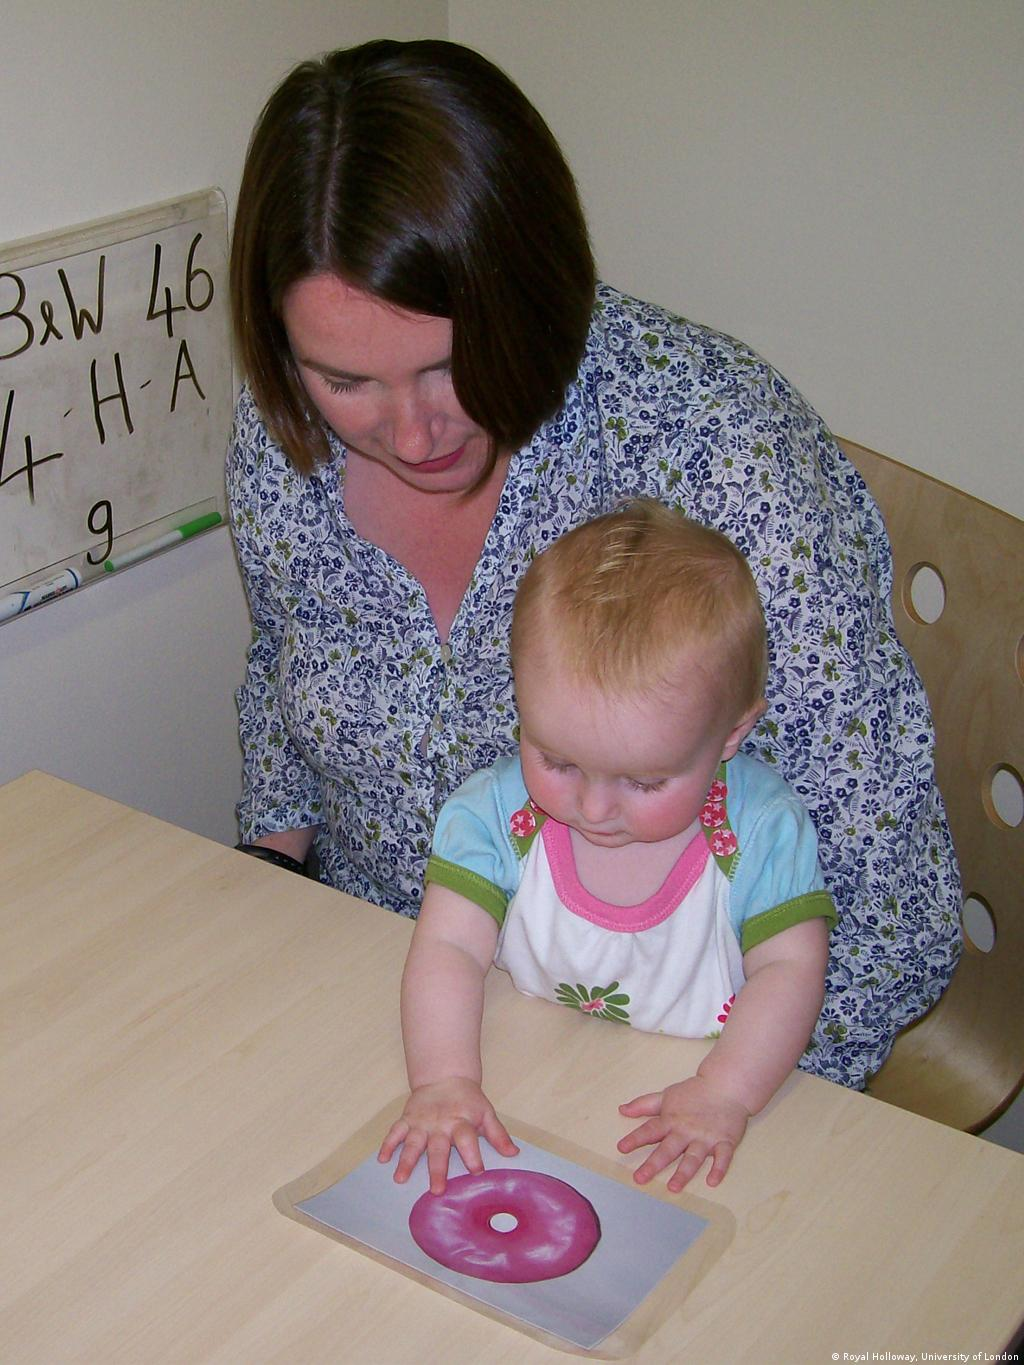 New research suggests interactive pop-up books are bad for a baby′s